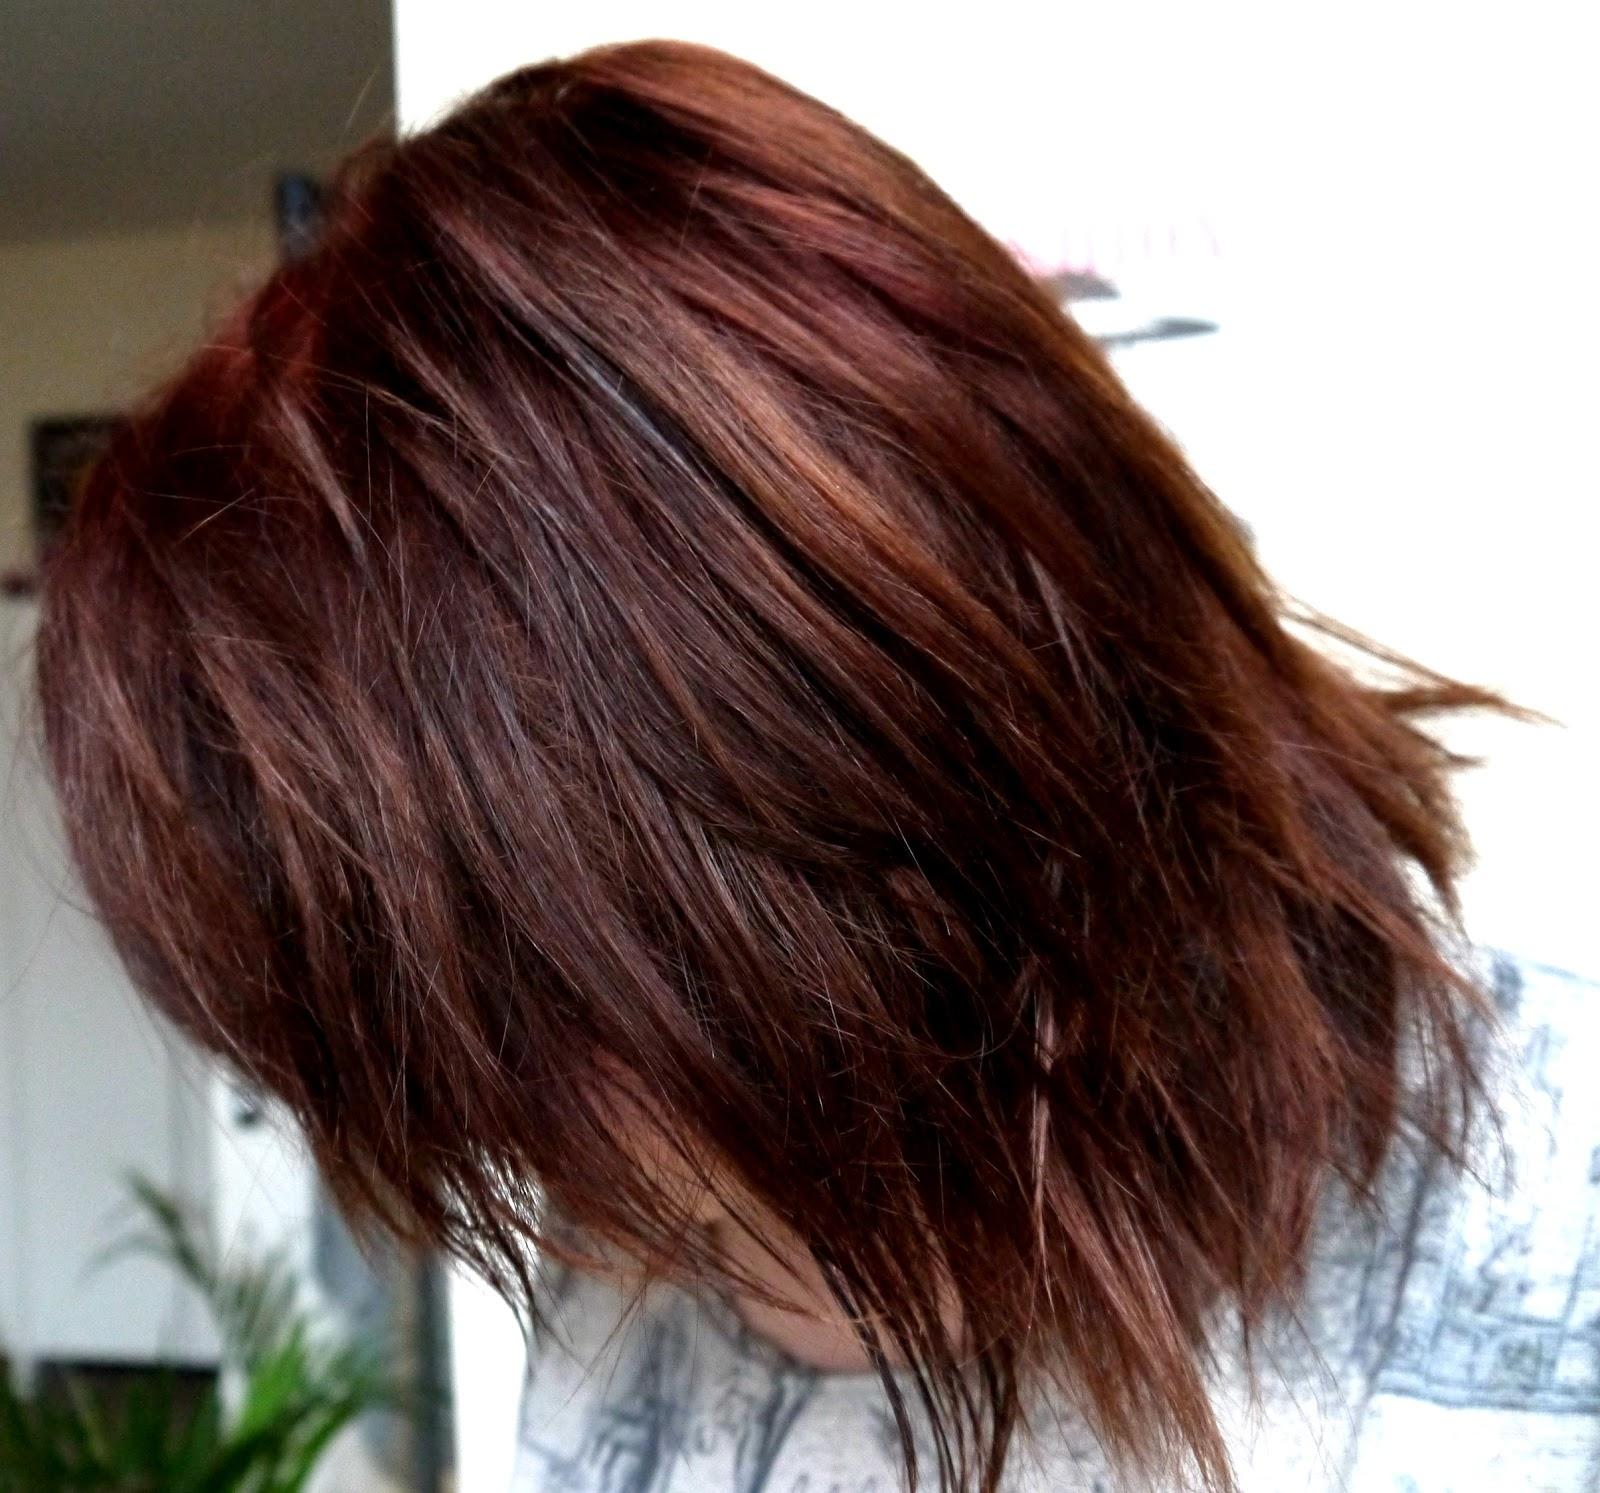 Lush Henna Natural Dye In Caca Marron Before After Good Golly